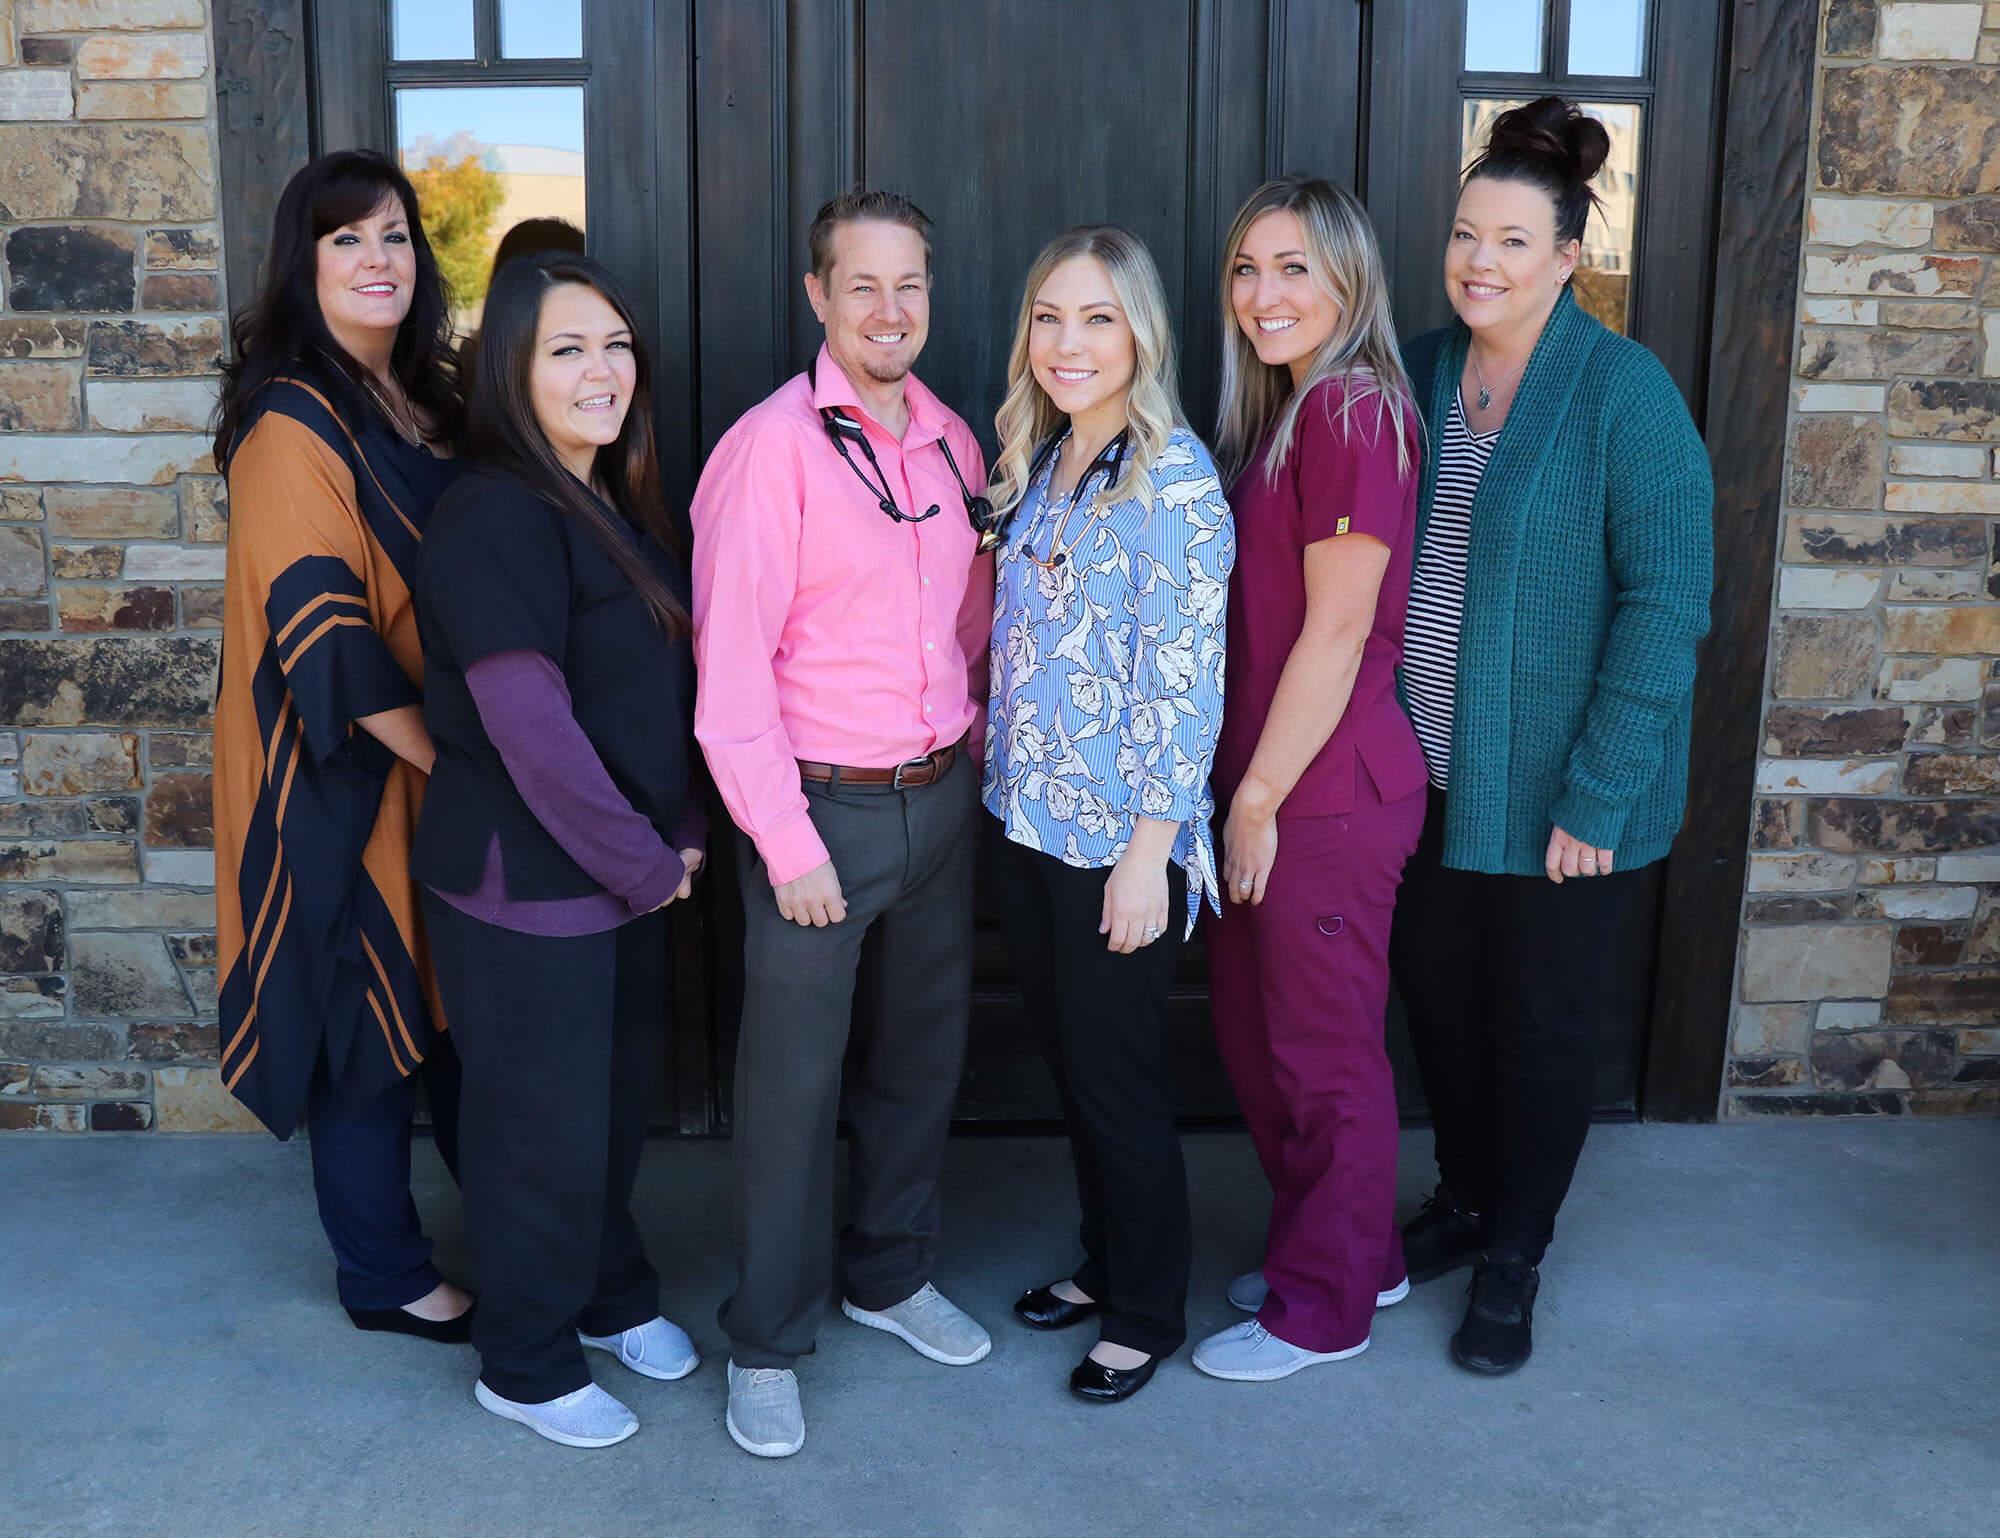 Idaho Falls Family Doctor